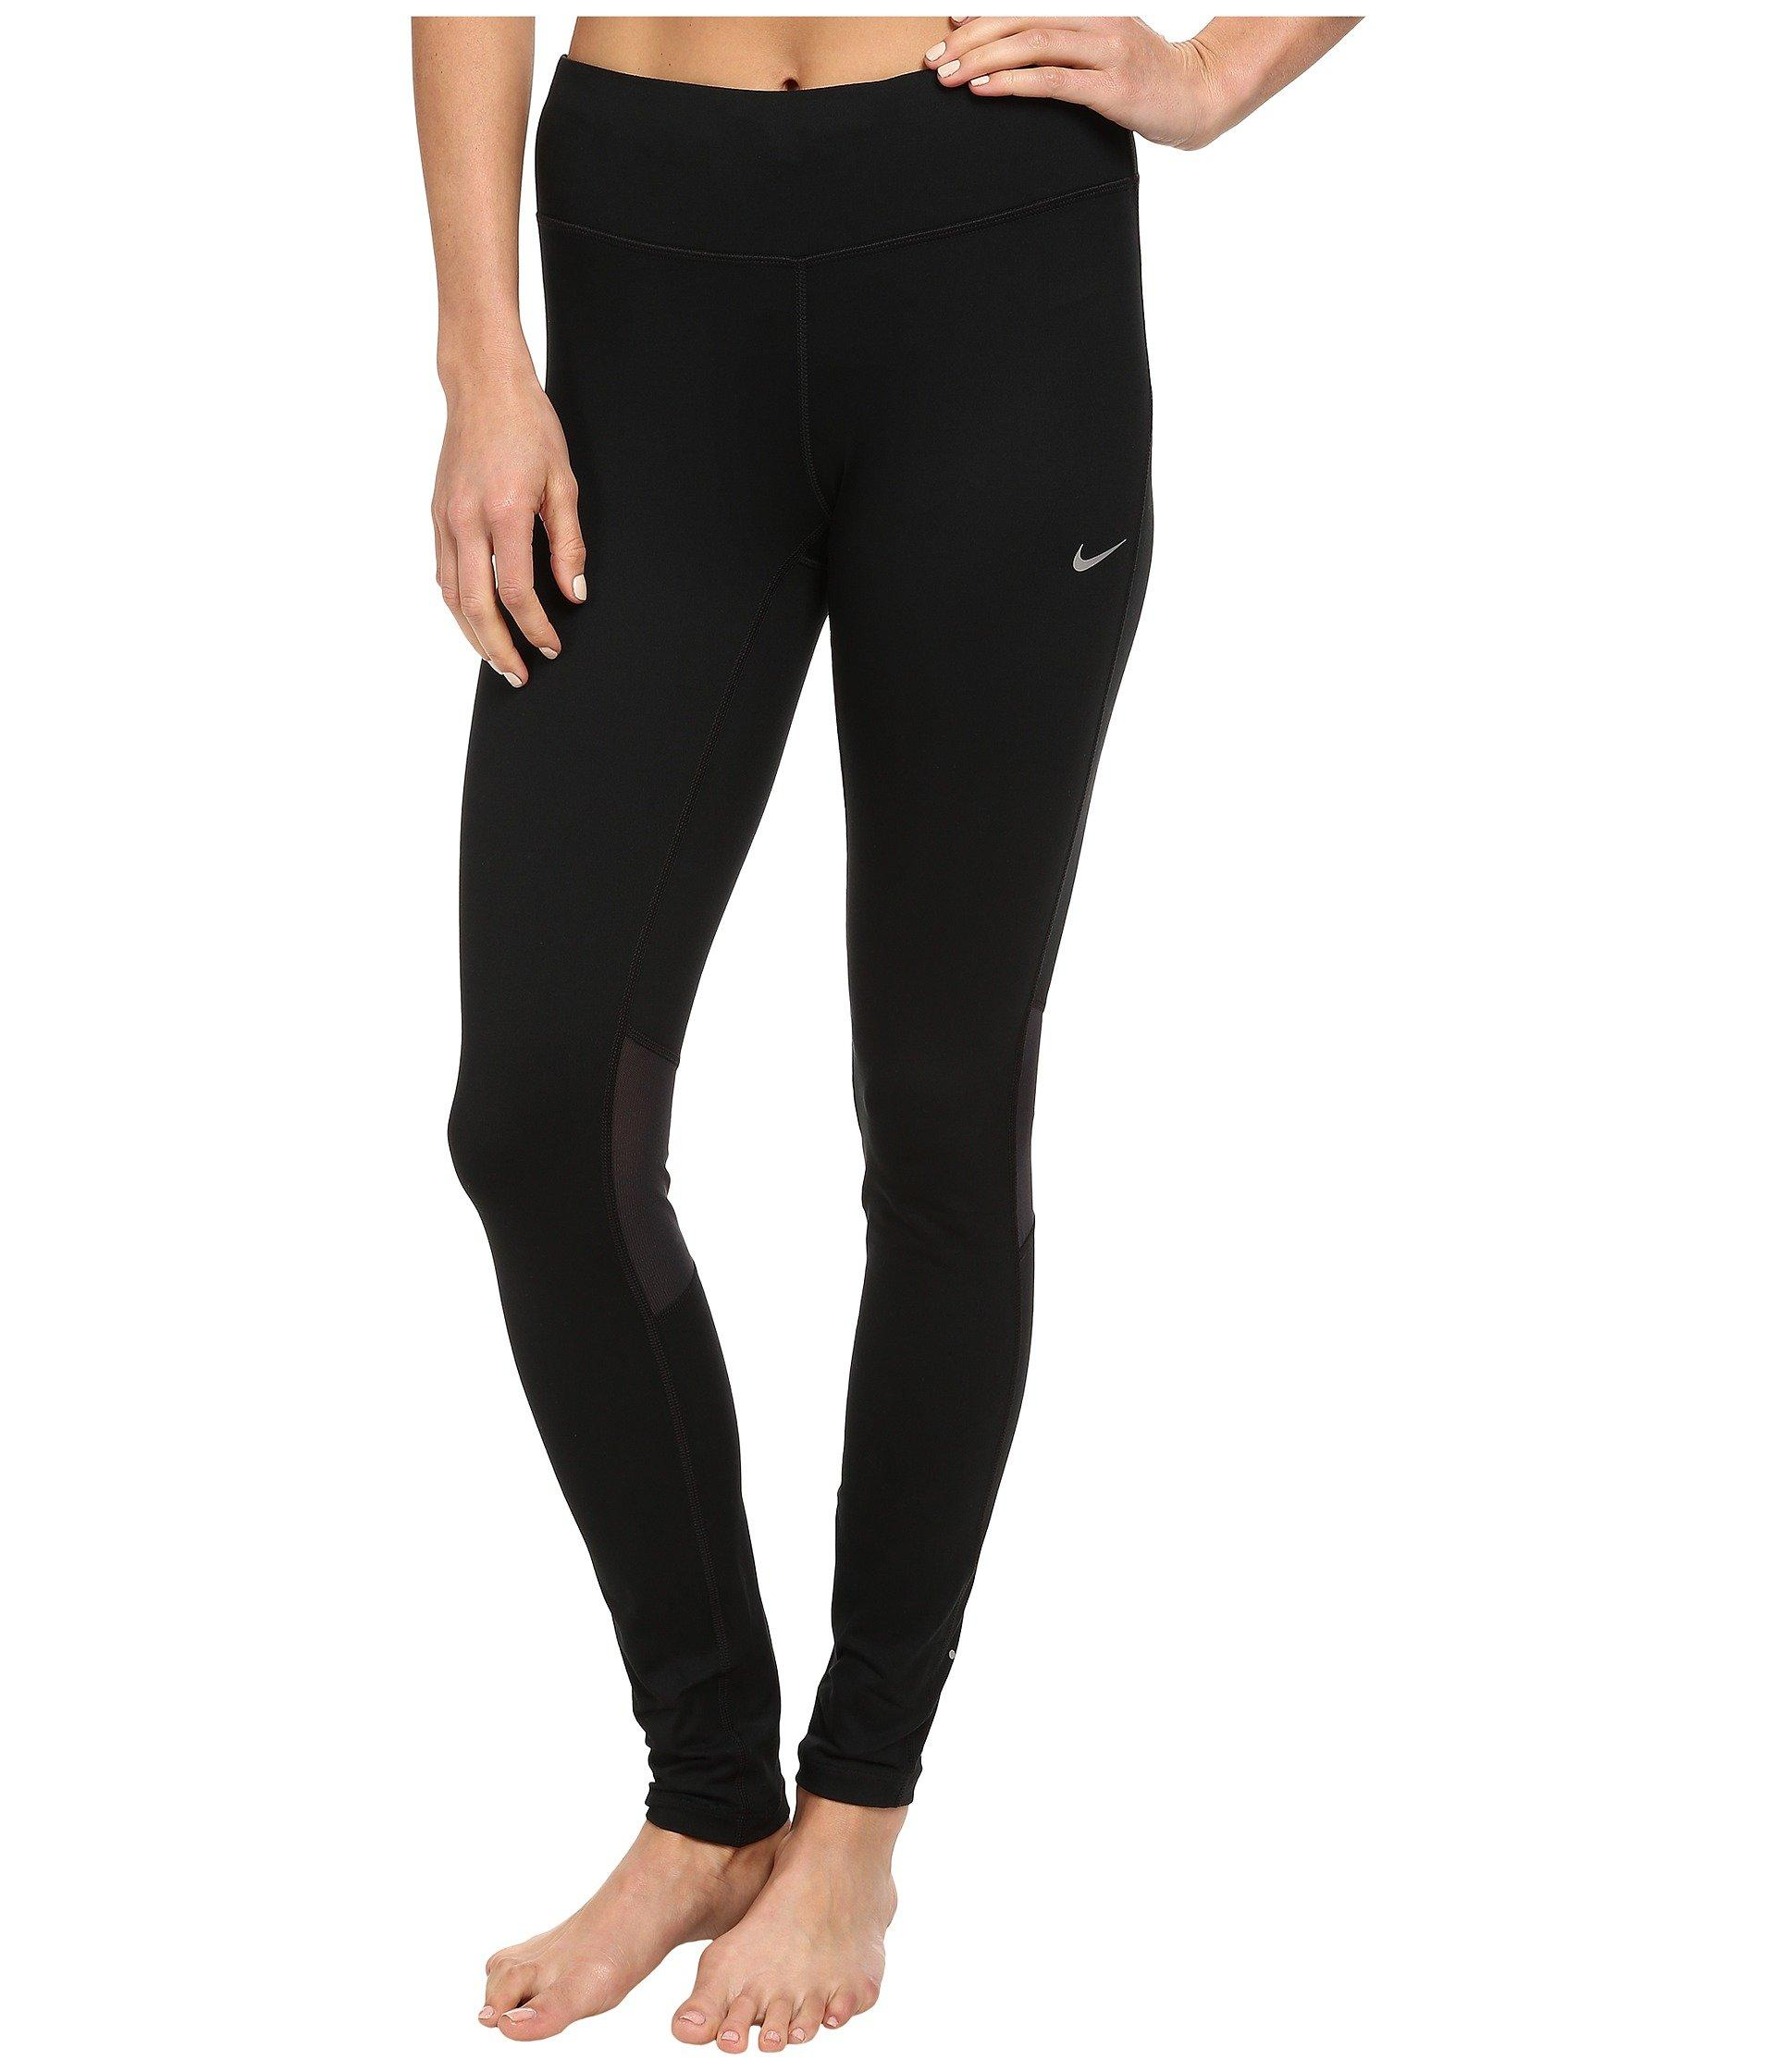 Nike Dri-fit™ Epic Run Tight In Black/black/reflective Silver